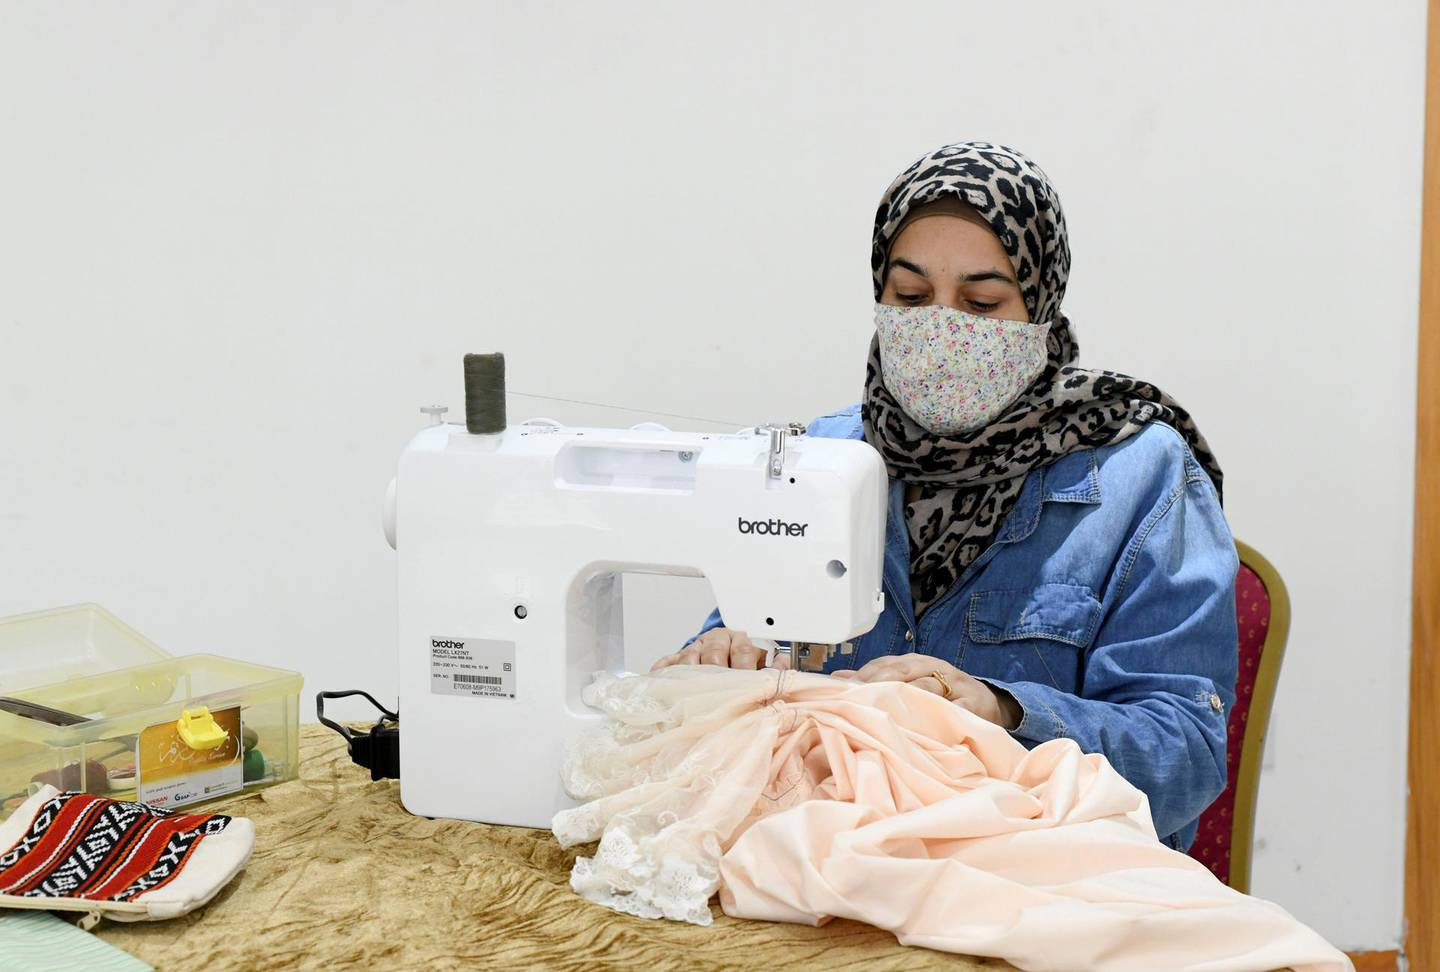 Lotus Training Centre-AD Samaher Al Mohammed, has learnt sewing, as well as, enrolled her children at the Lotus Holistic Retal Training Centre in the capital on June 20, 2021. Khushnum Bhandari/ The National Reporter: Haneen Dajani News